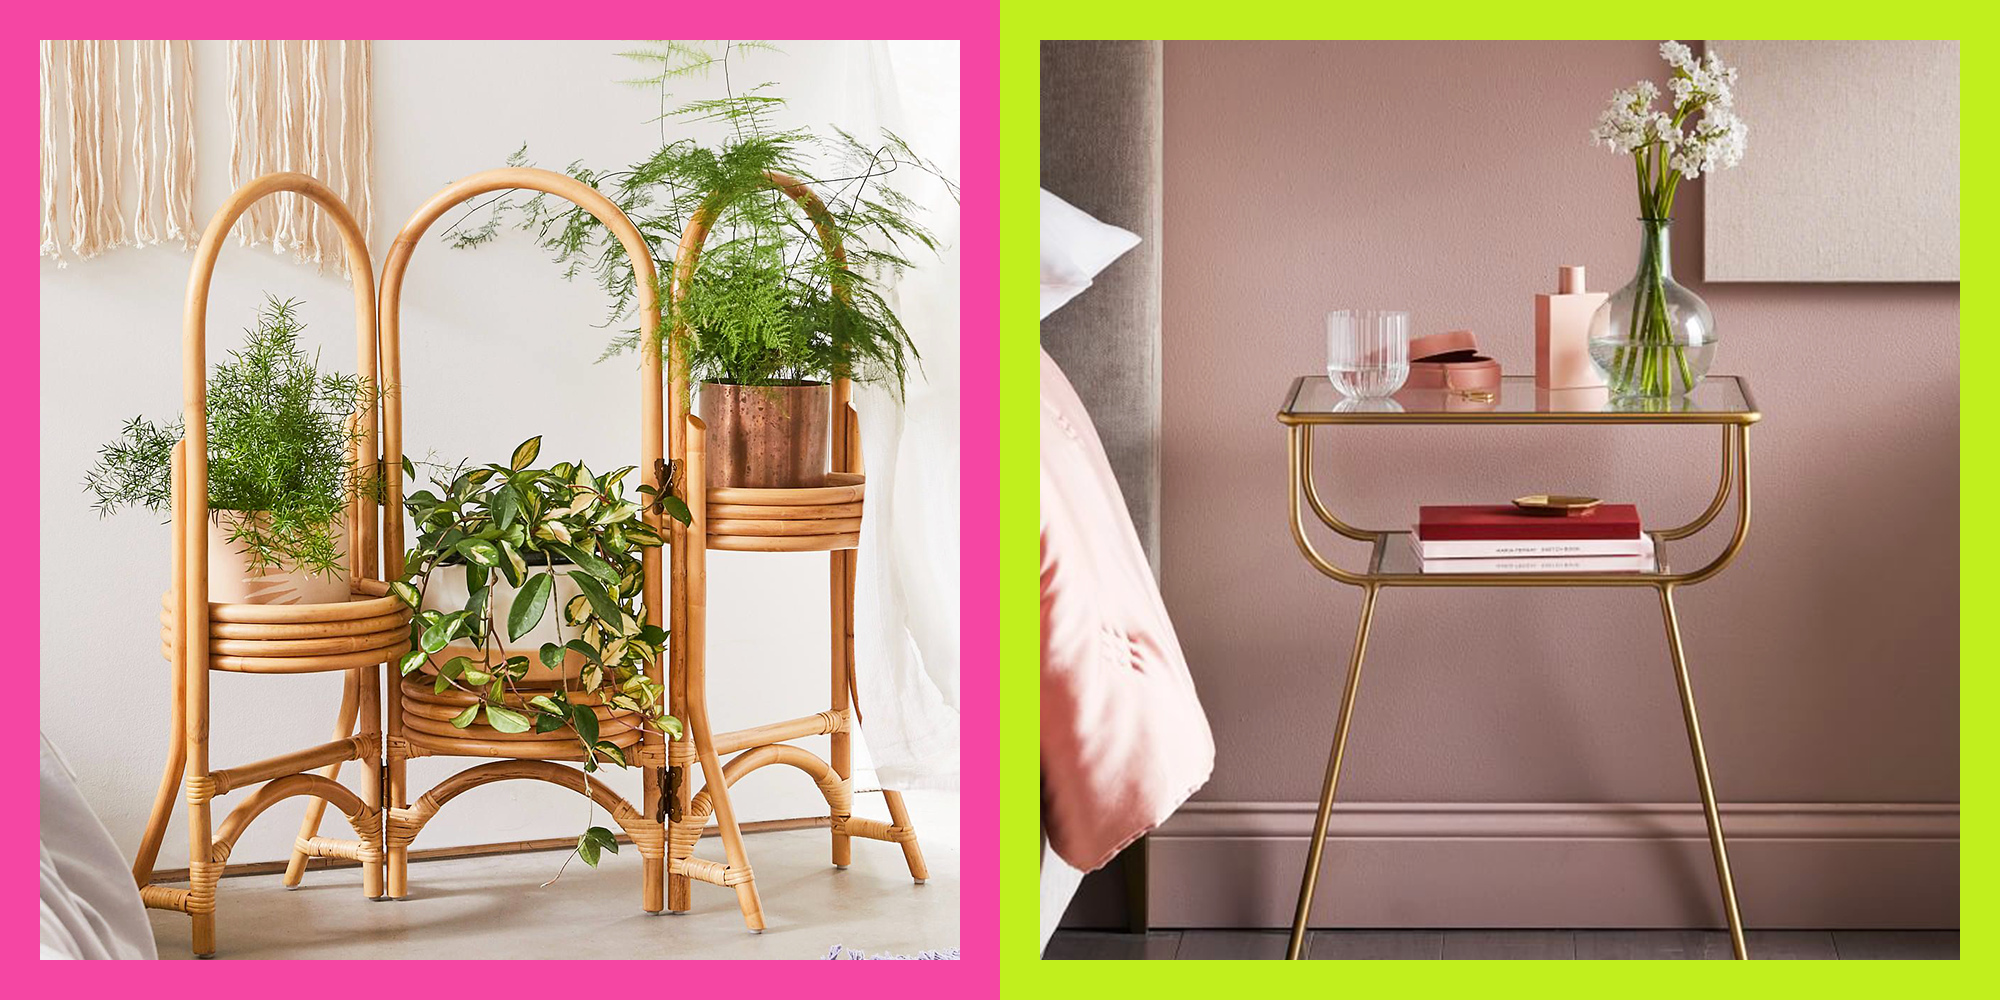 Easy Ways To Freshen Room Tiny Decor Changes To Make Your Room Feel All Fresh And New Again